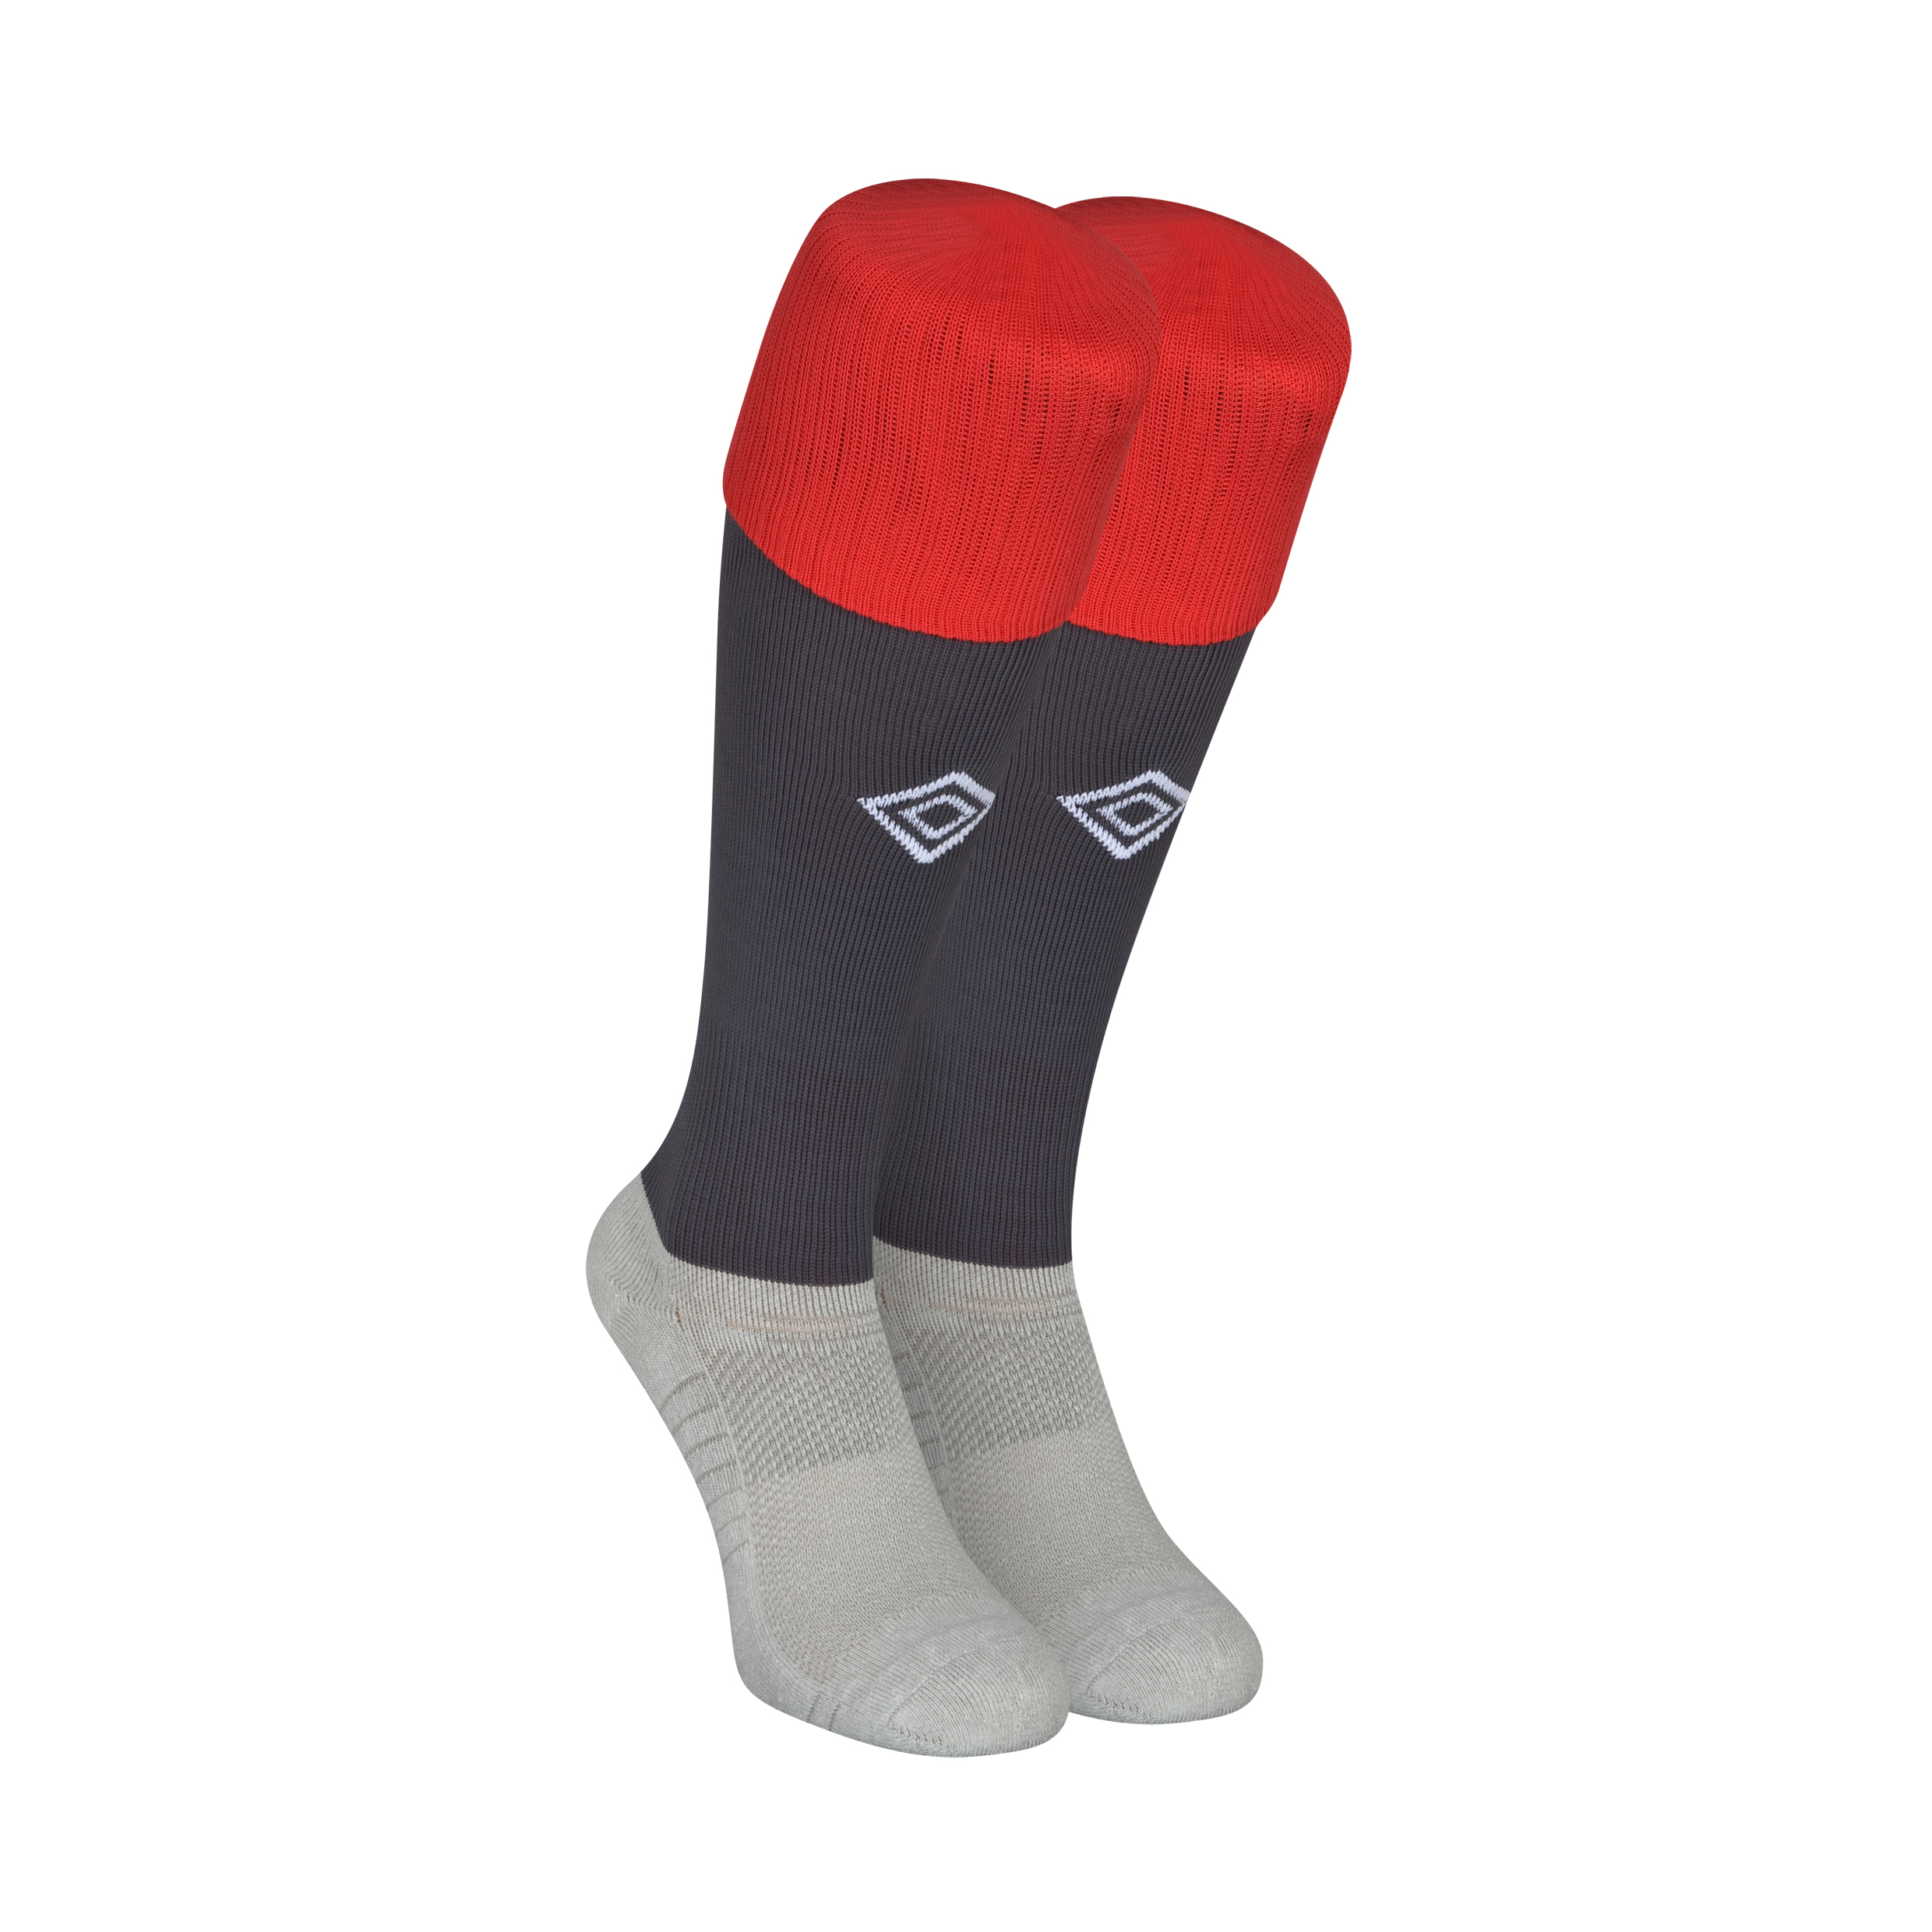 Wales Away Sock 2011. for 9€